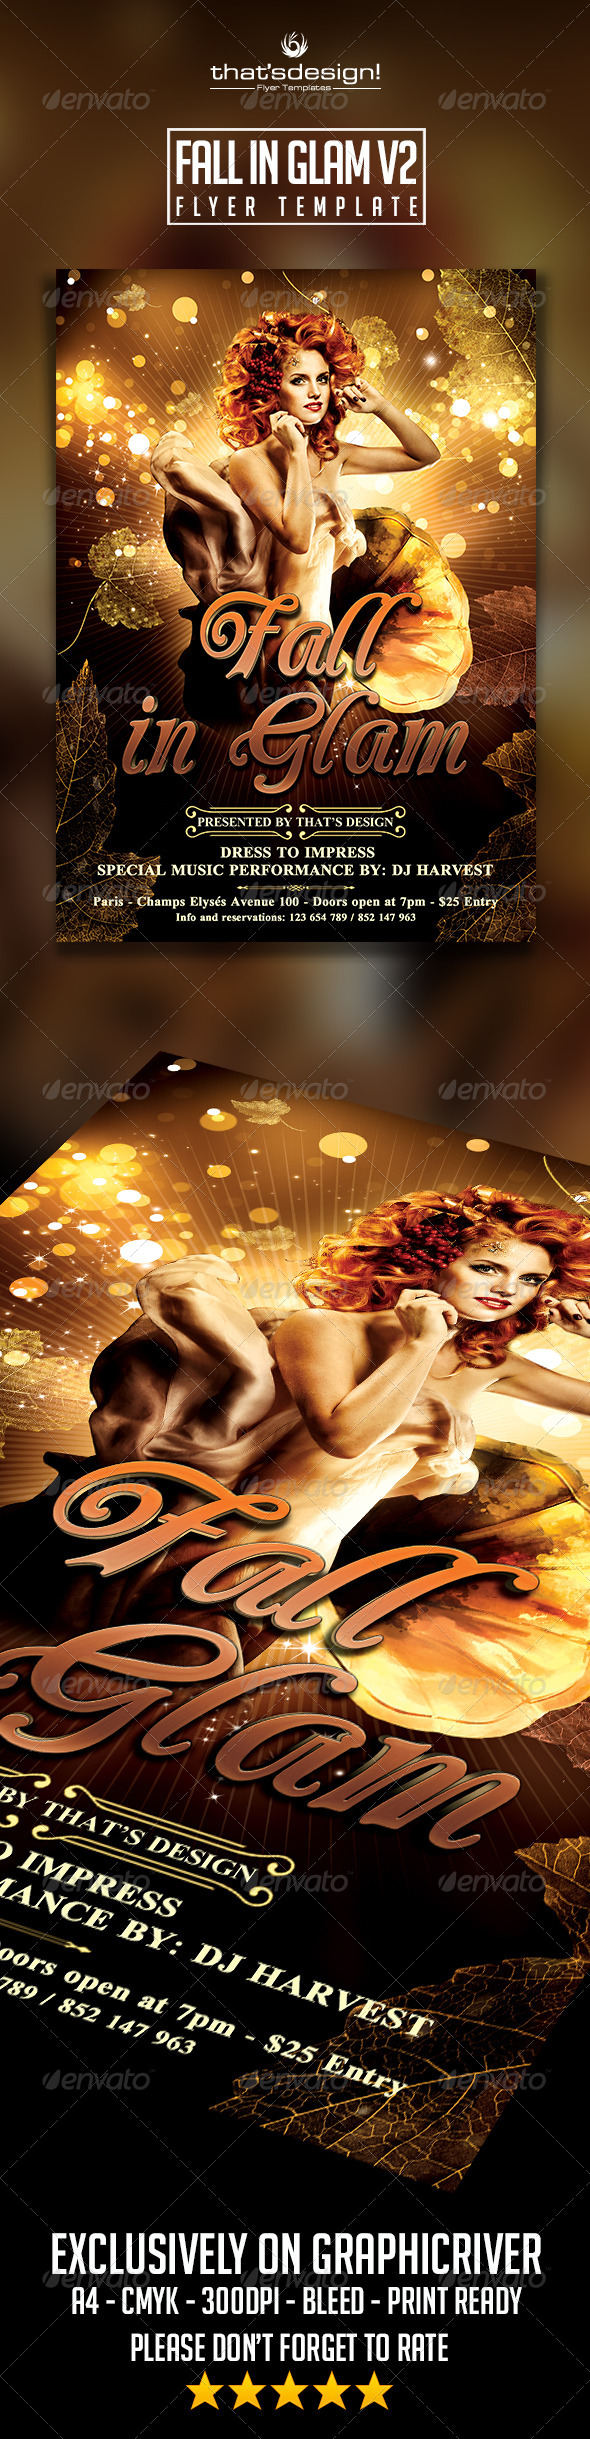 GraphicRiver Fall in Glam Flyer Template V2 8645396